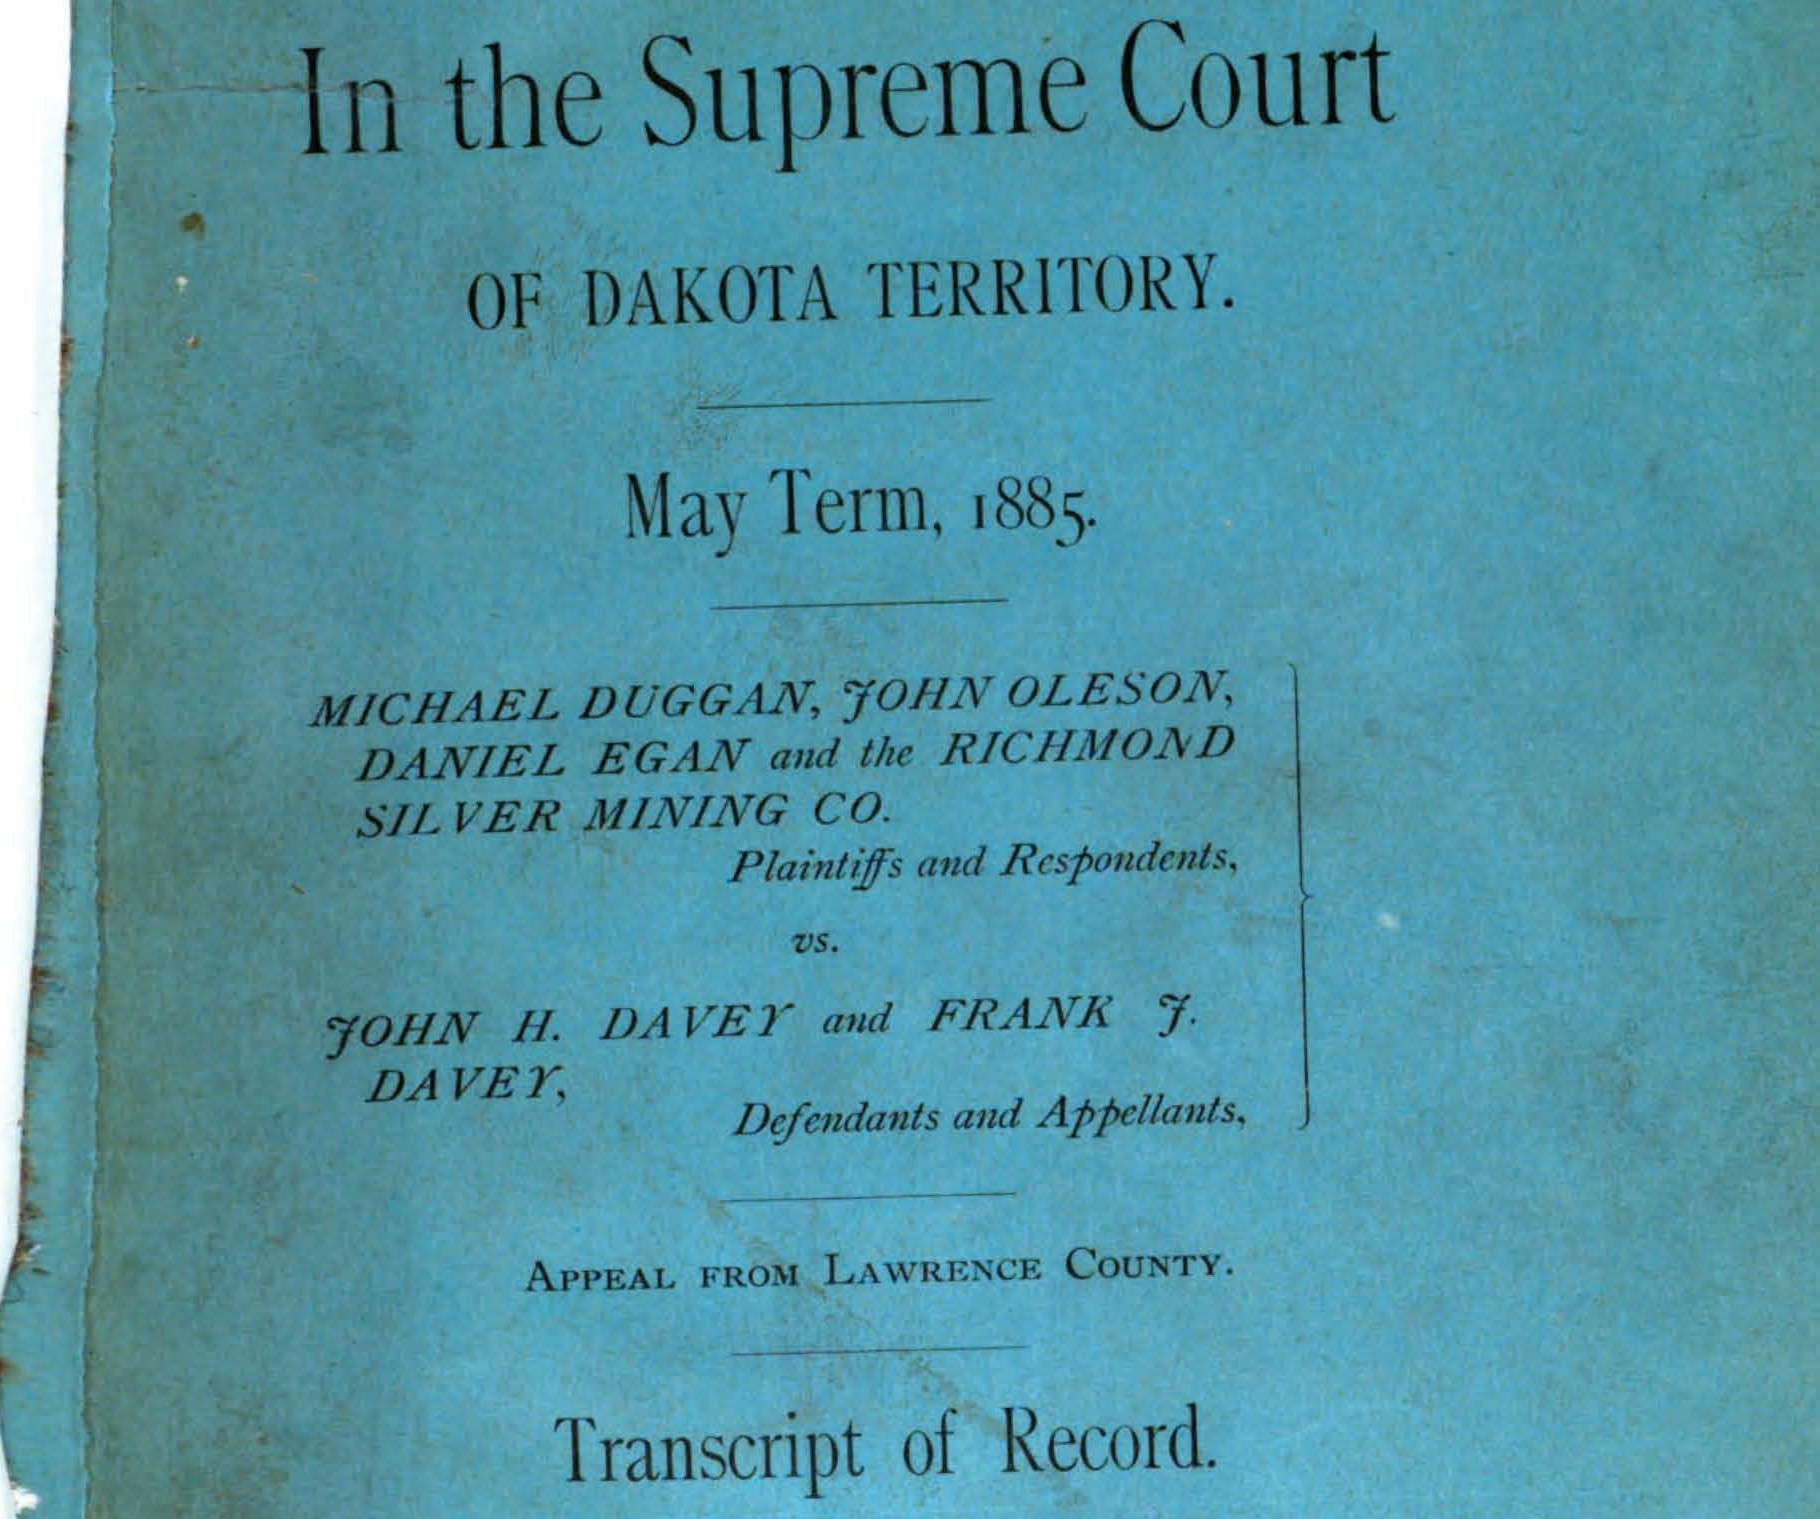 Cover of Richmond V. Davey appeal